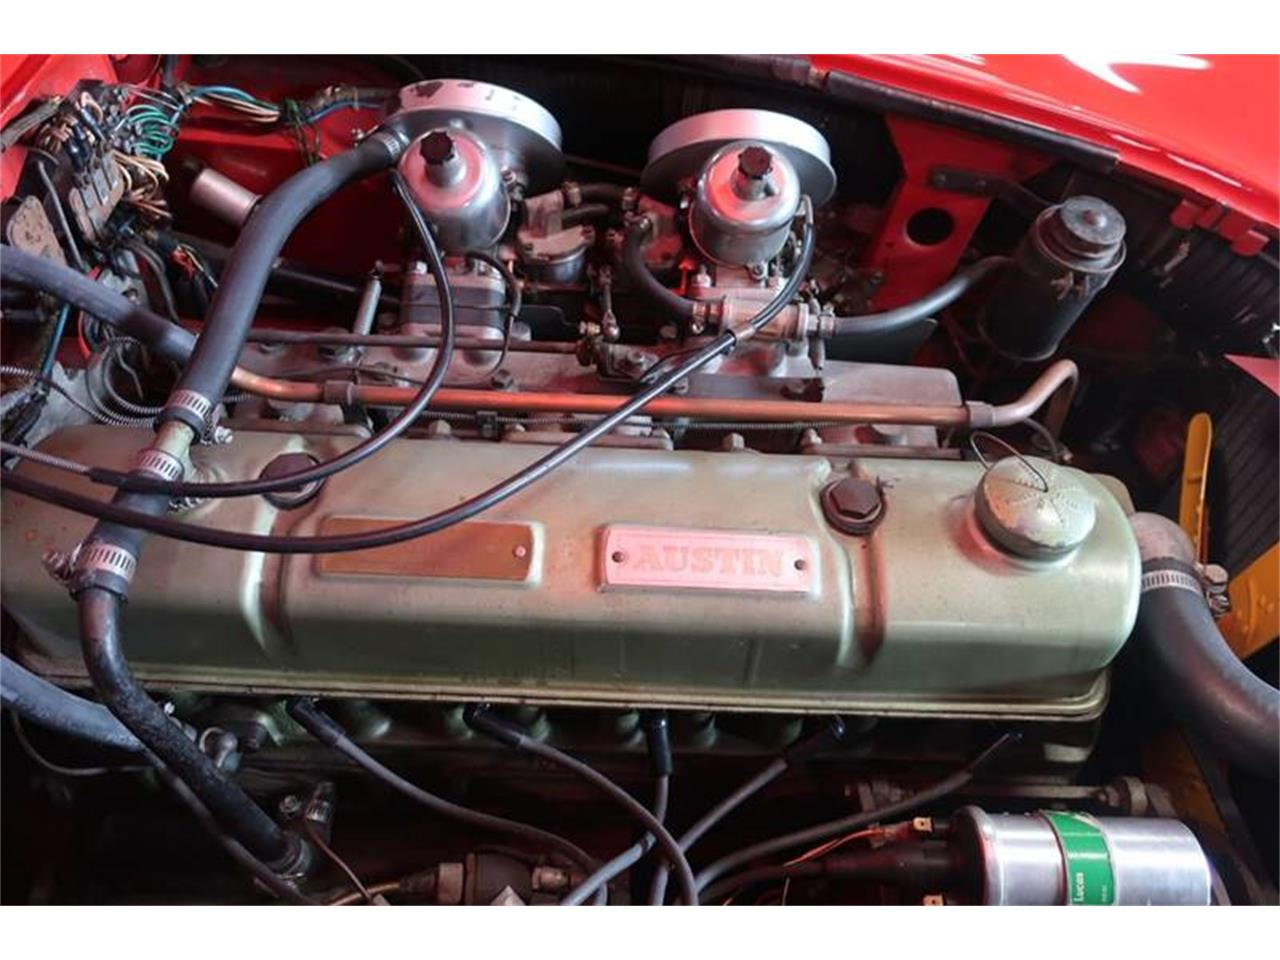 Large Picture of Classic '63 Austin-Healey 3000 located in Hailey Idaho - $72,000.00 Offered by Sun Valley Auto Club - QYY7